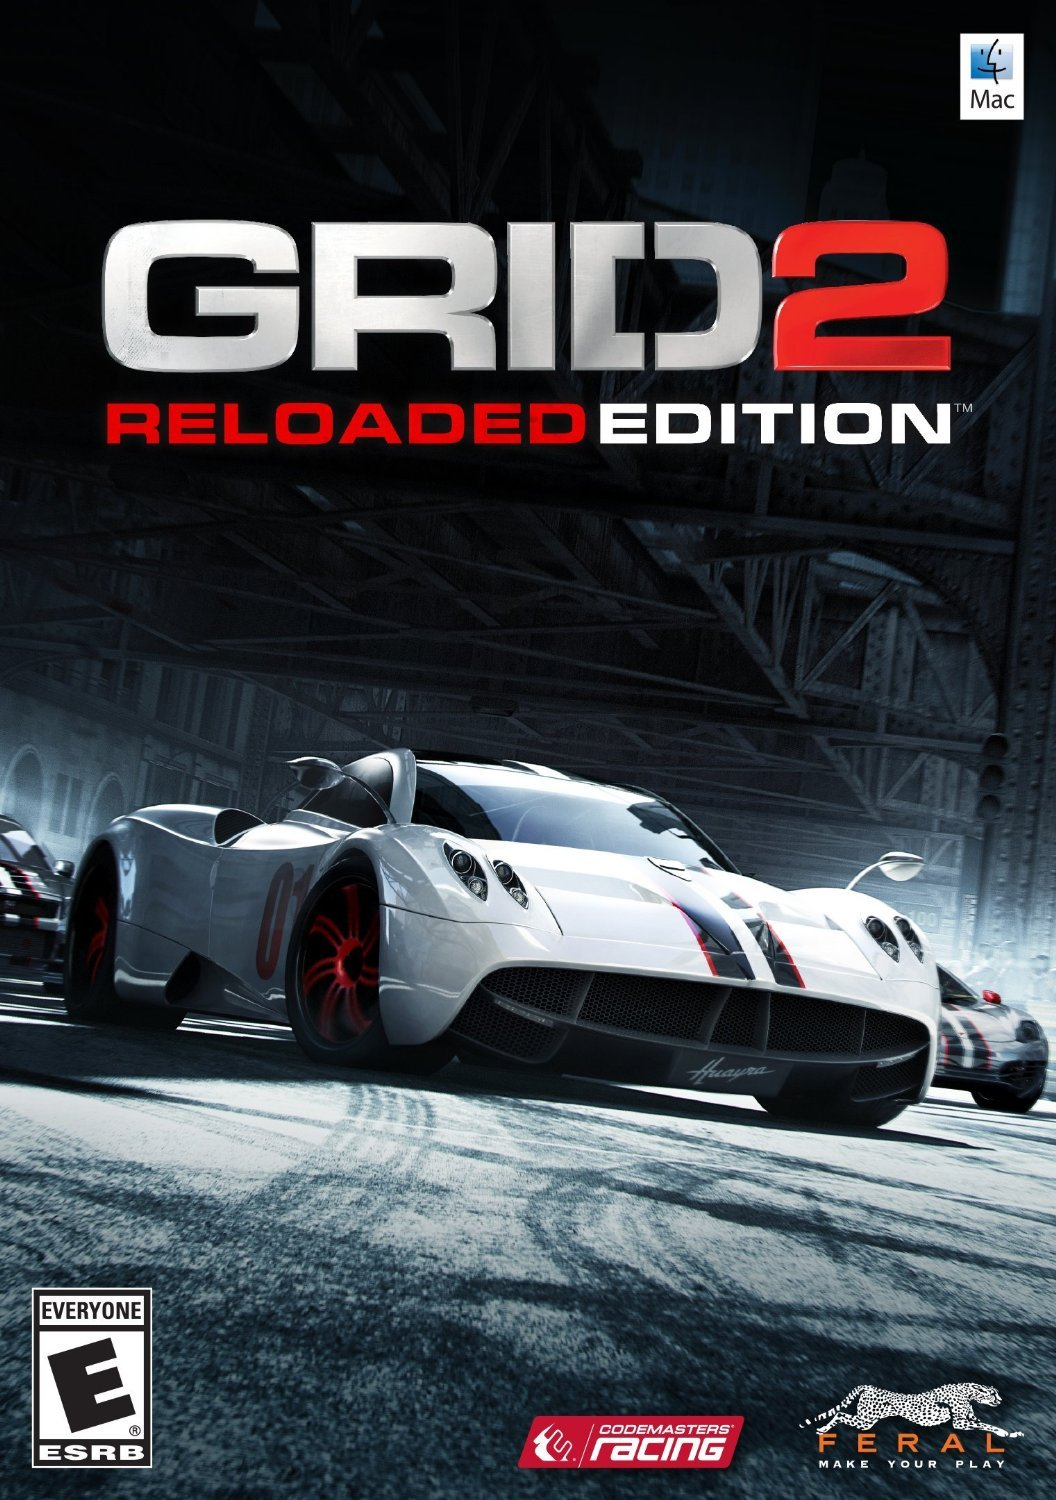 GRID 2 Reloaded Edition Windows PC Game Download Steam CD-Key Global